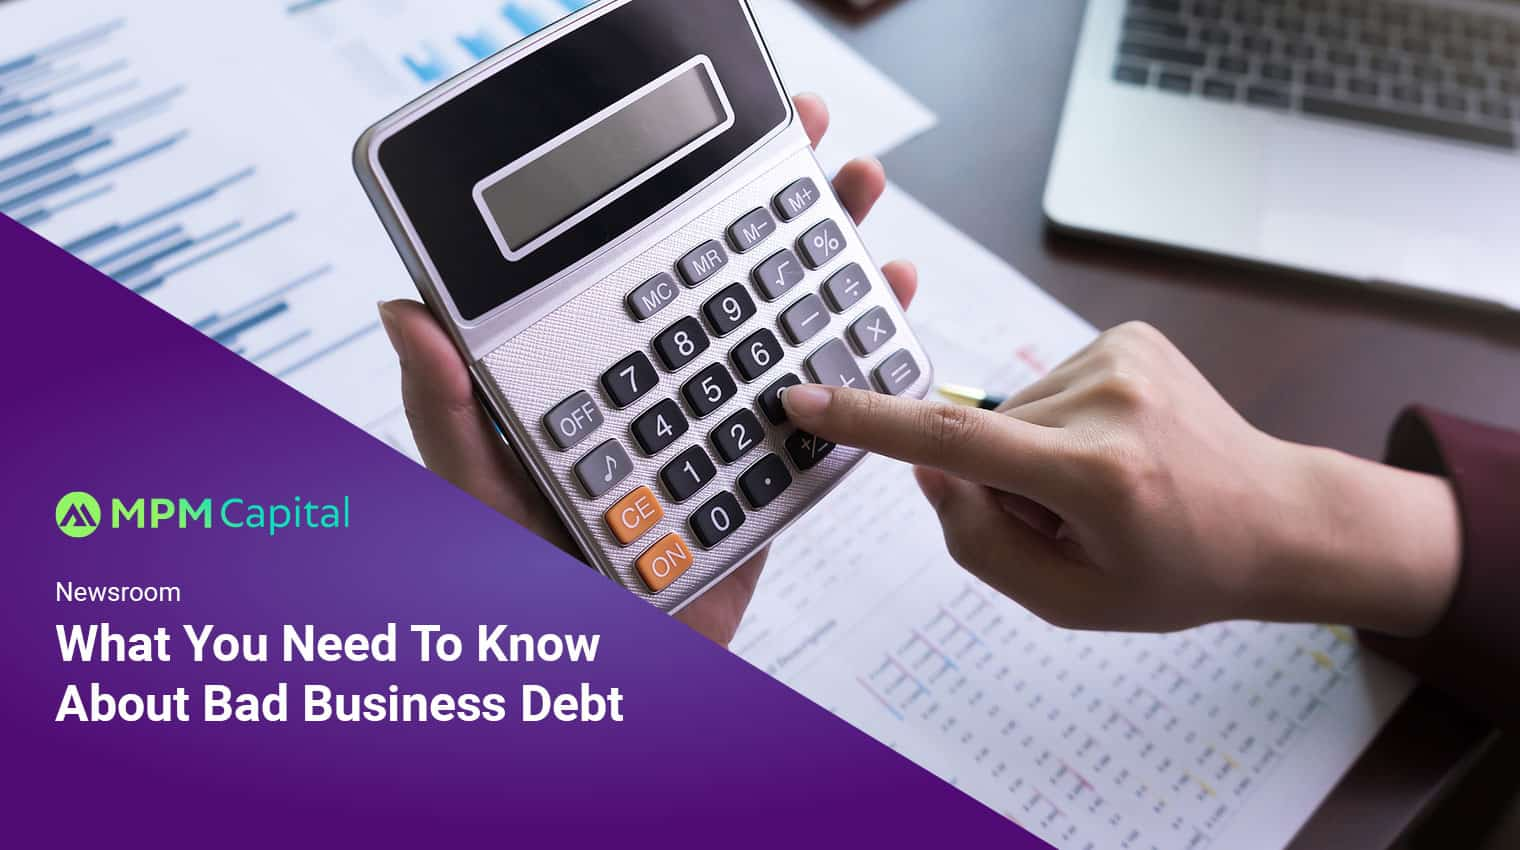 What-You-Need-To-Know-About-Bad-Business-Debt-MPM-Capital-Singapore